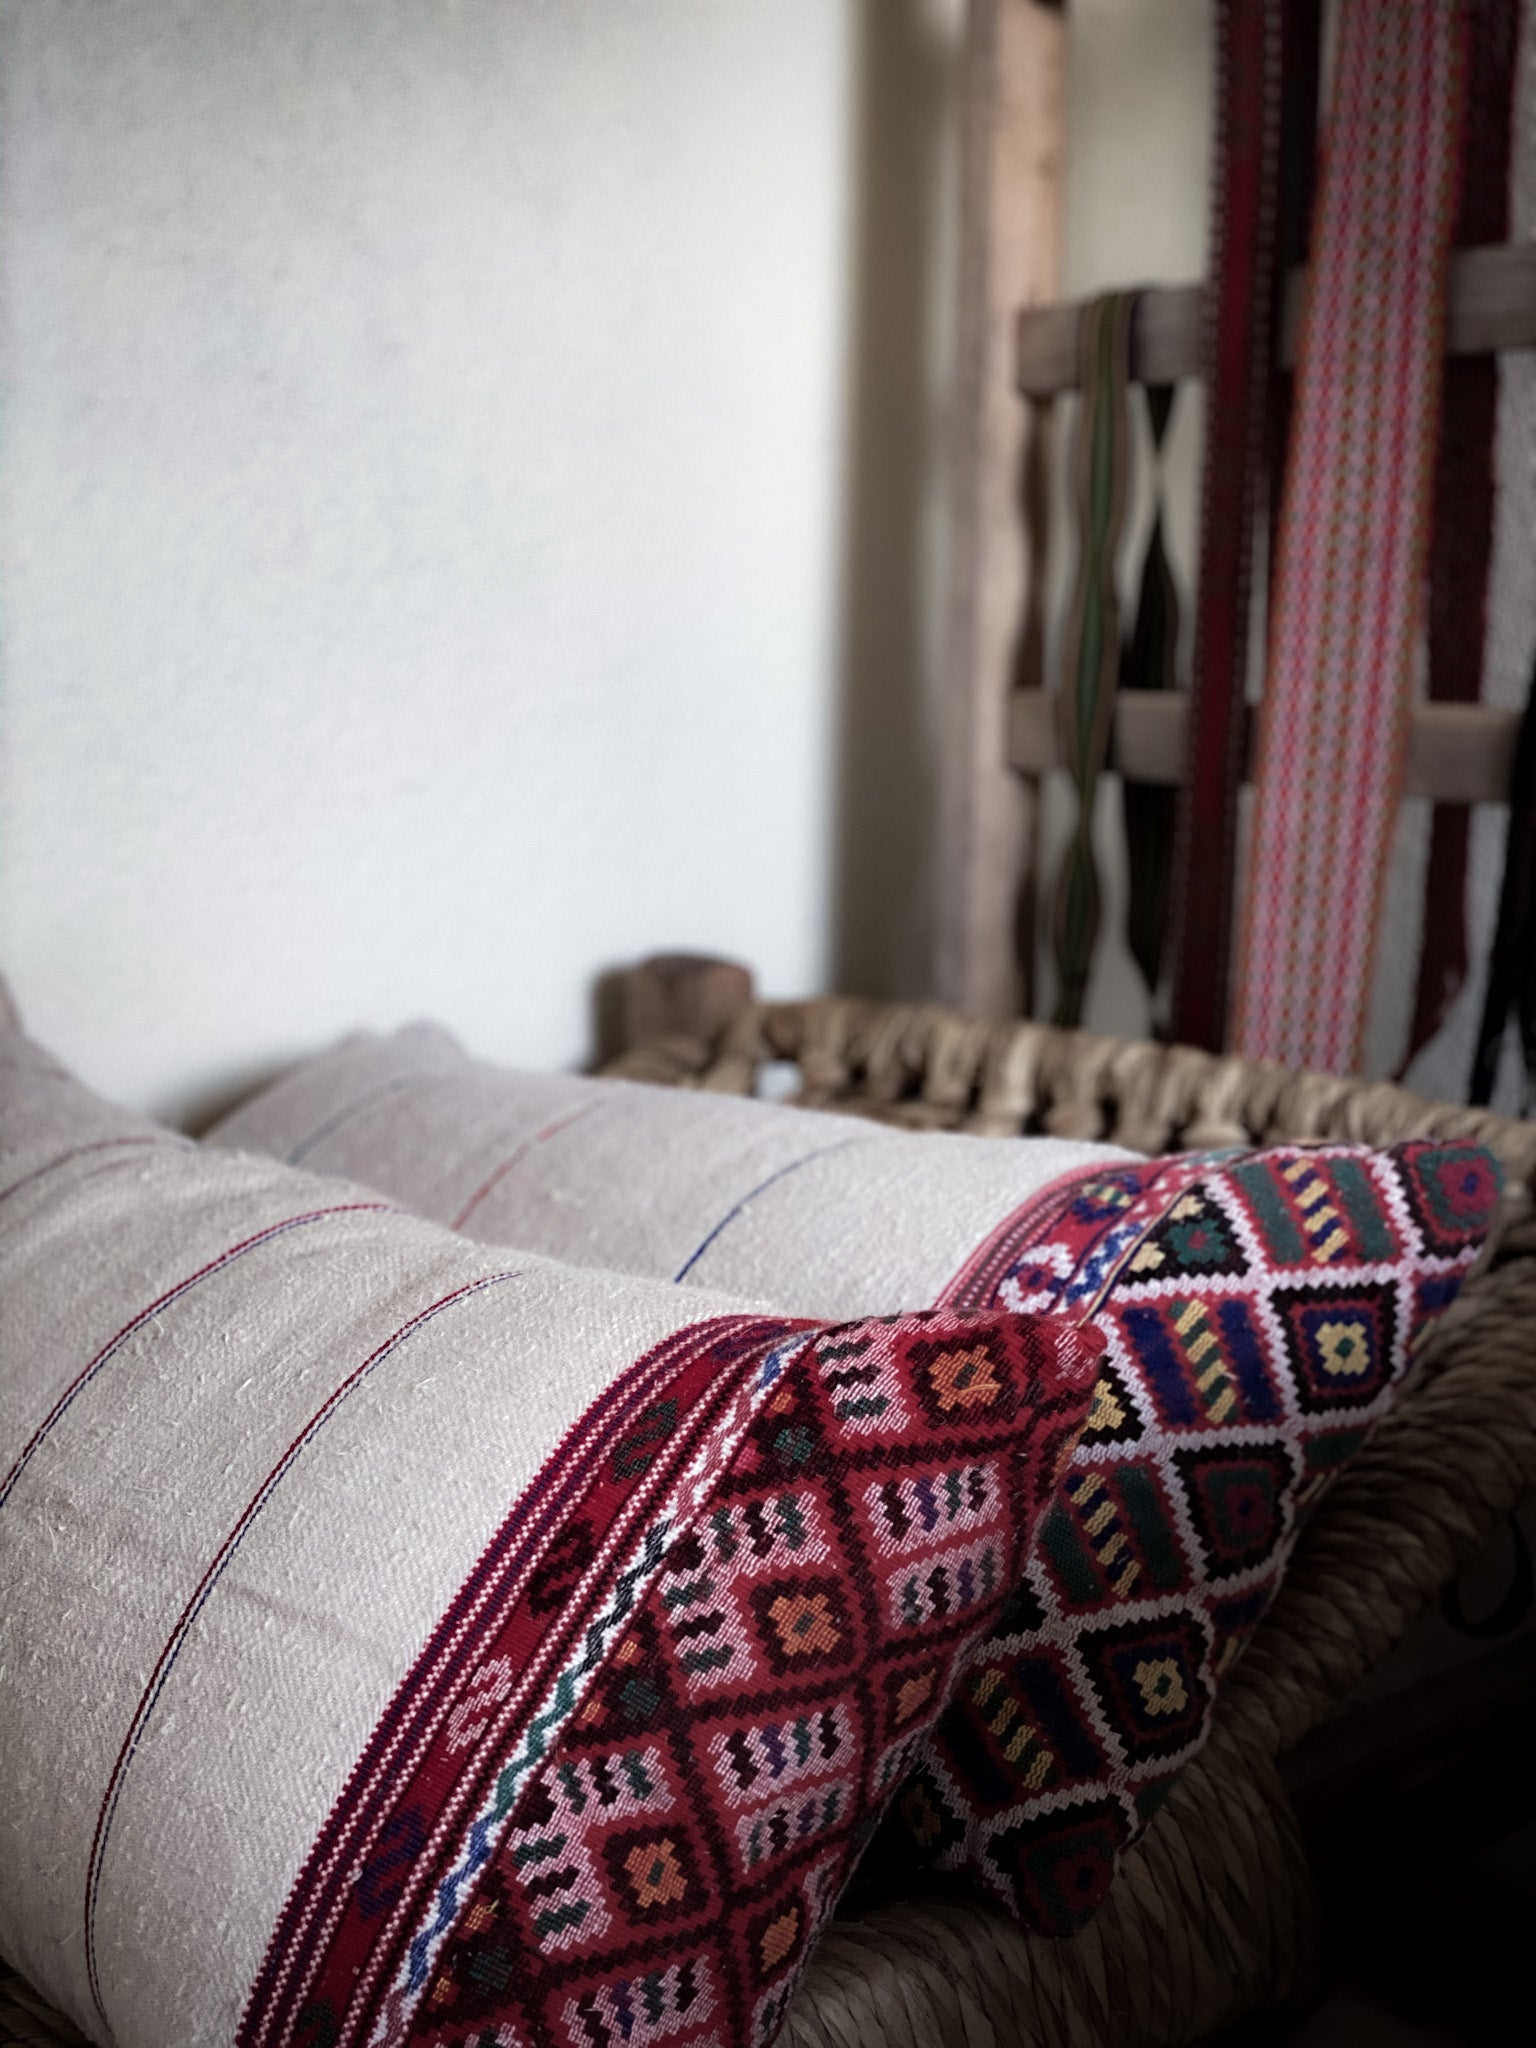 Pillow: Handwoven antique Hungarian hemp - P092